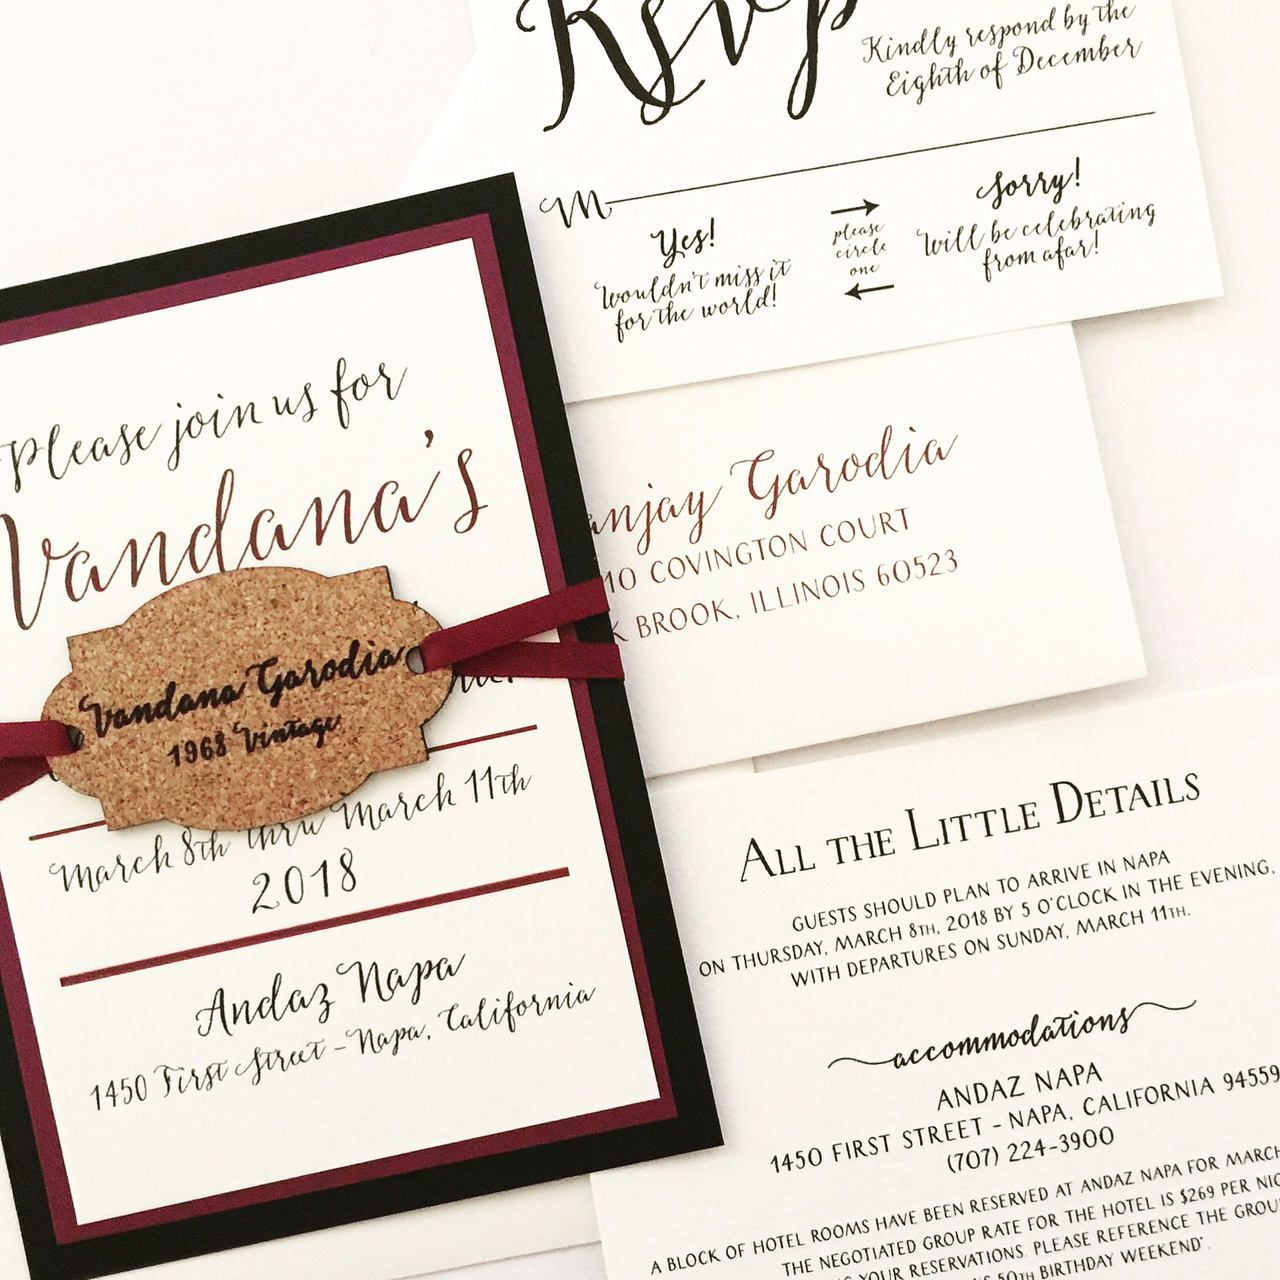 Winery Invitation with Wine Cork Hangtag - SAMPLE | Winery Wedding ...